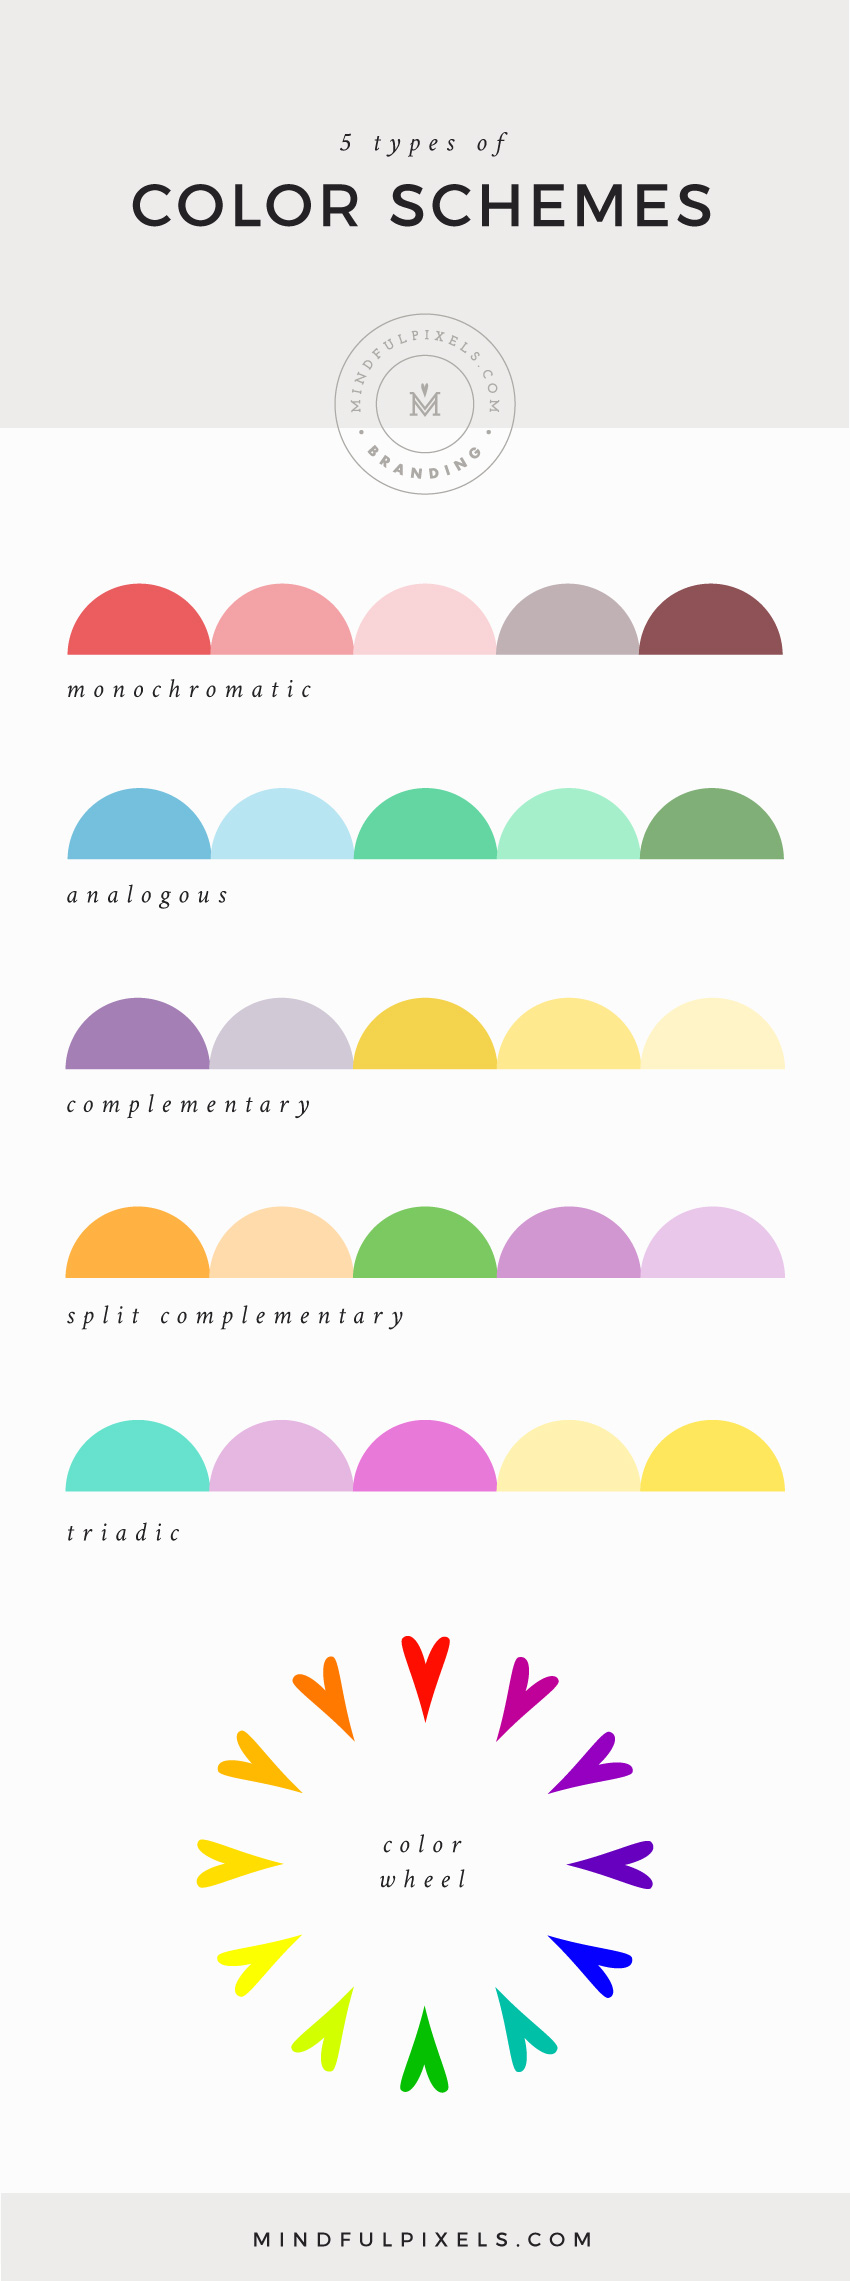 5 Types of Color Schemes | Mindful Pixels